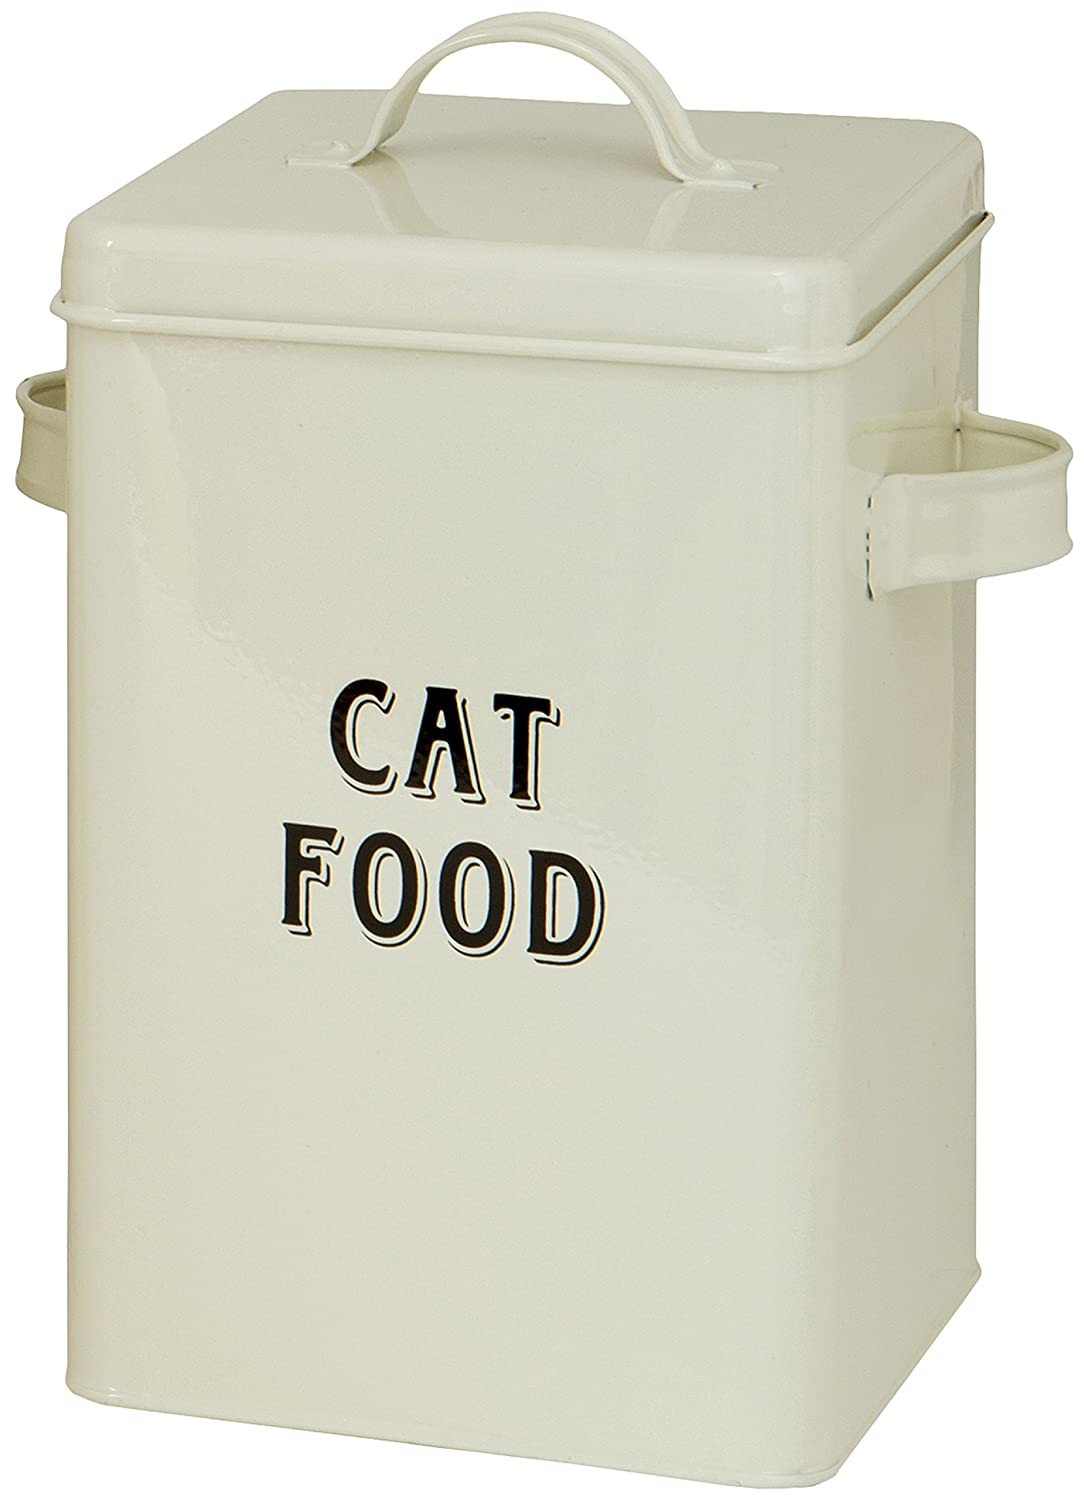 Amazoncom Maturi Cream Metal Cat Food Storage Container Tin with